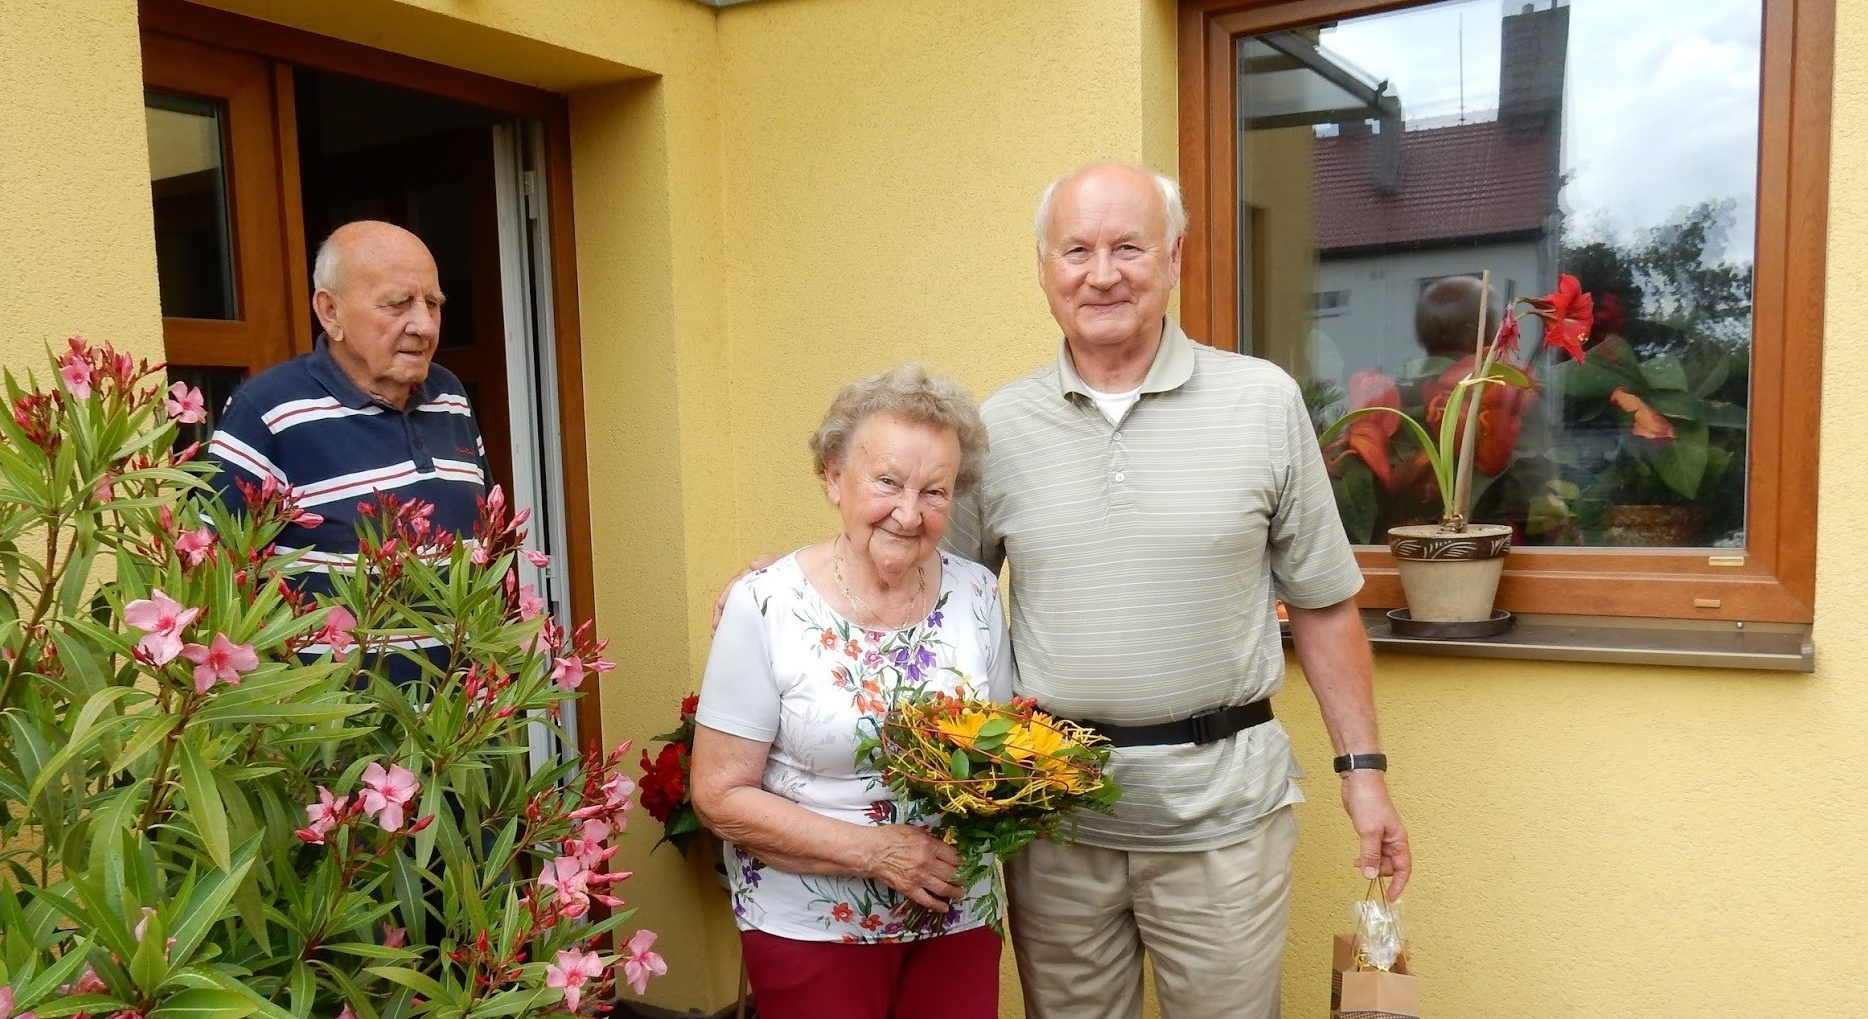 How My 86-Year-Old Grandma Found Two Brothers She Didn't Know Existed Thanks to MyHeritage